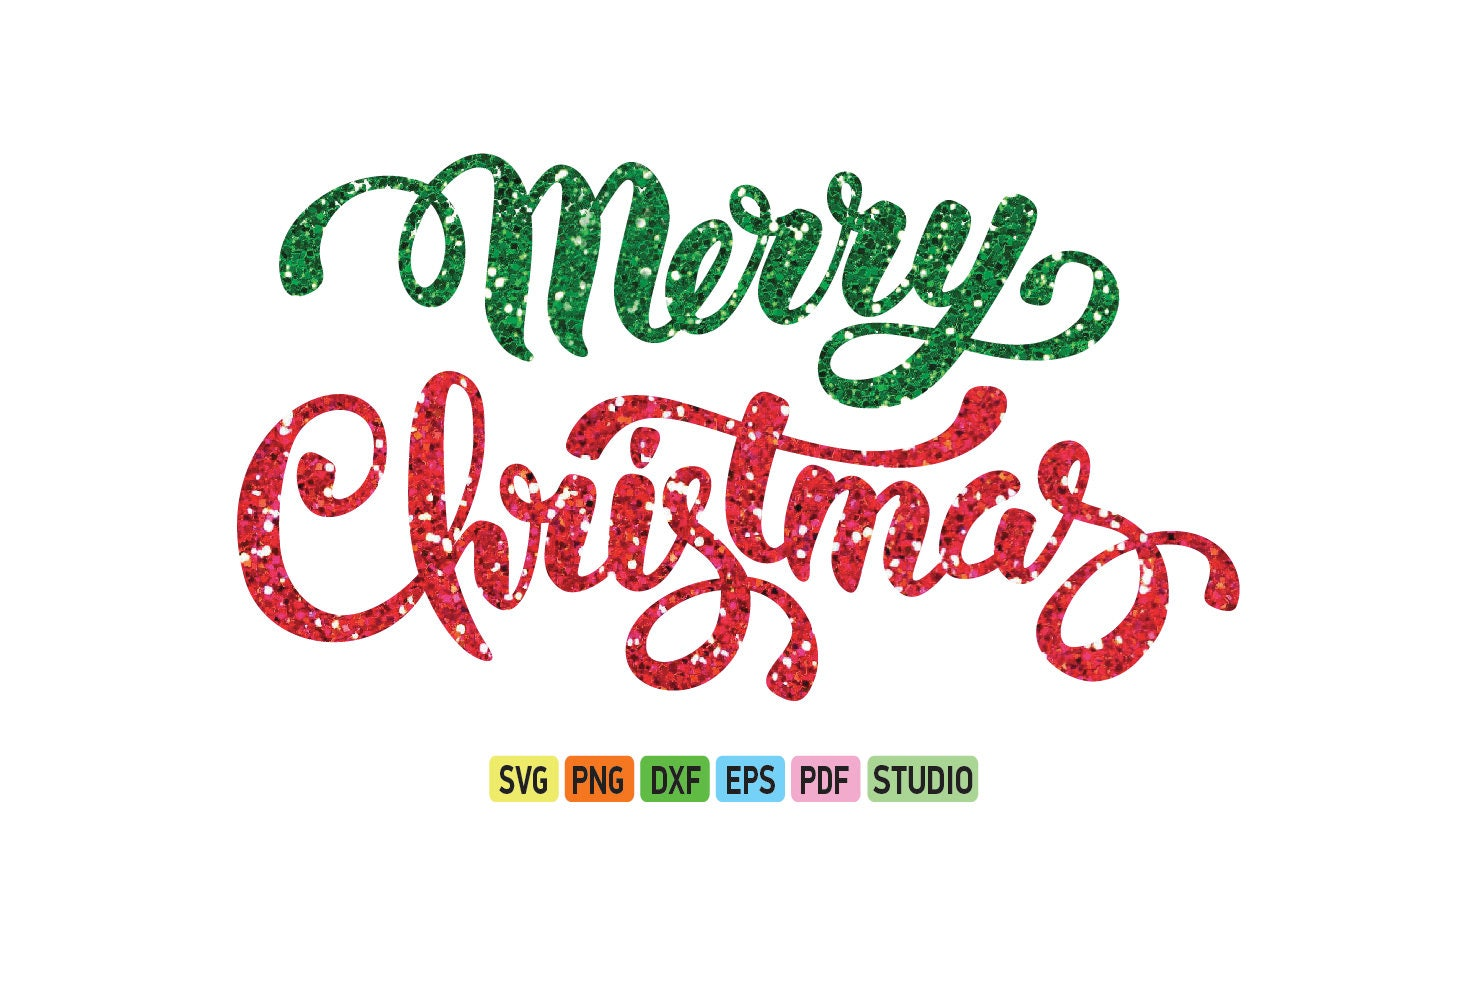 merry christmas svg holiday svg christ svg christmas - HD 1466×991